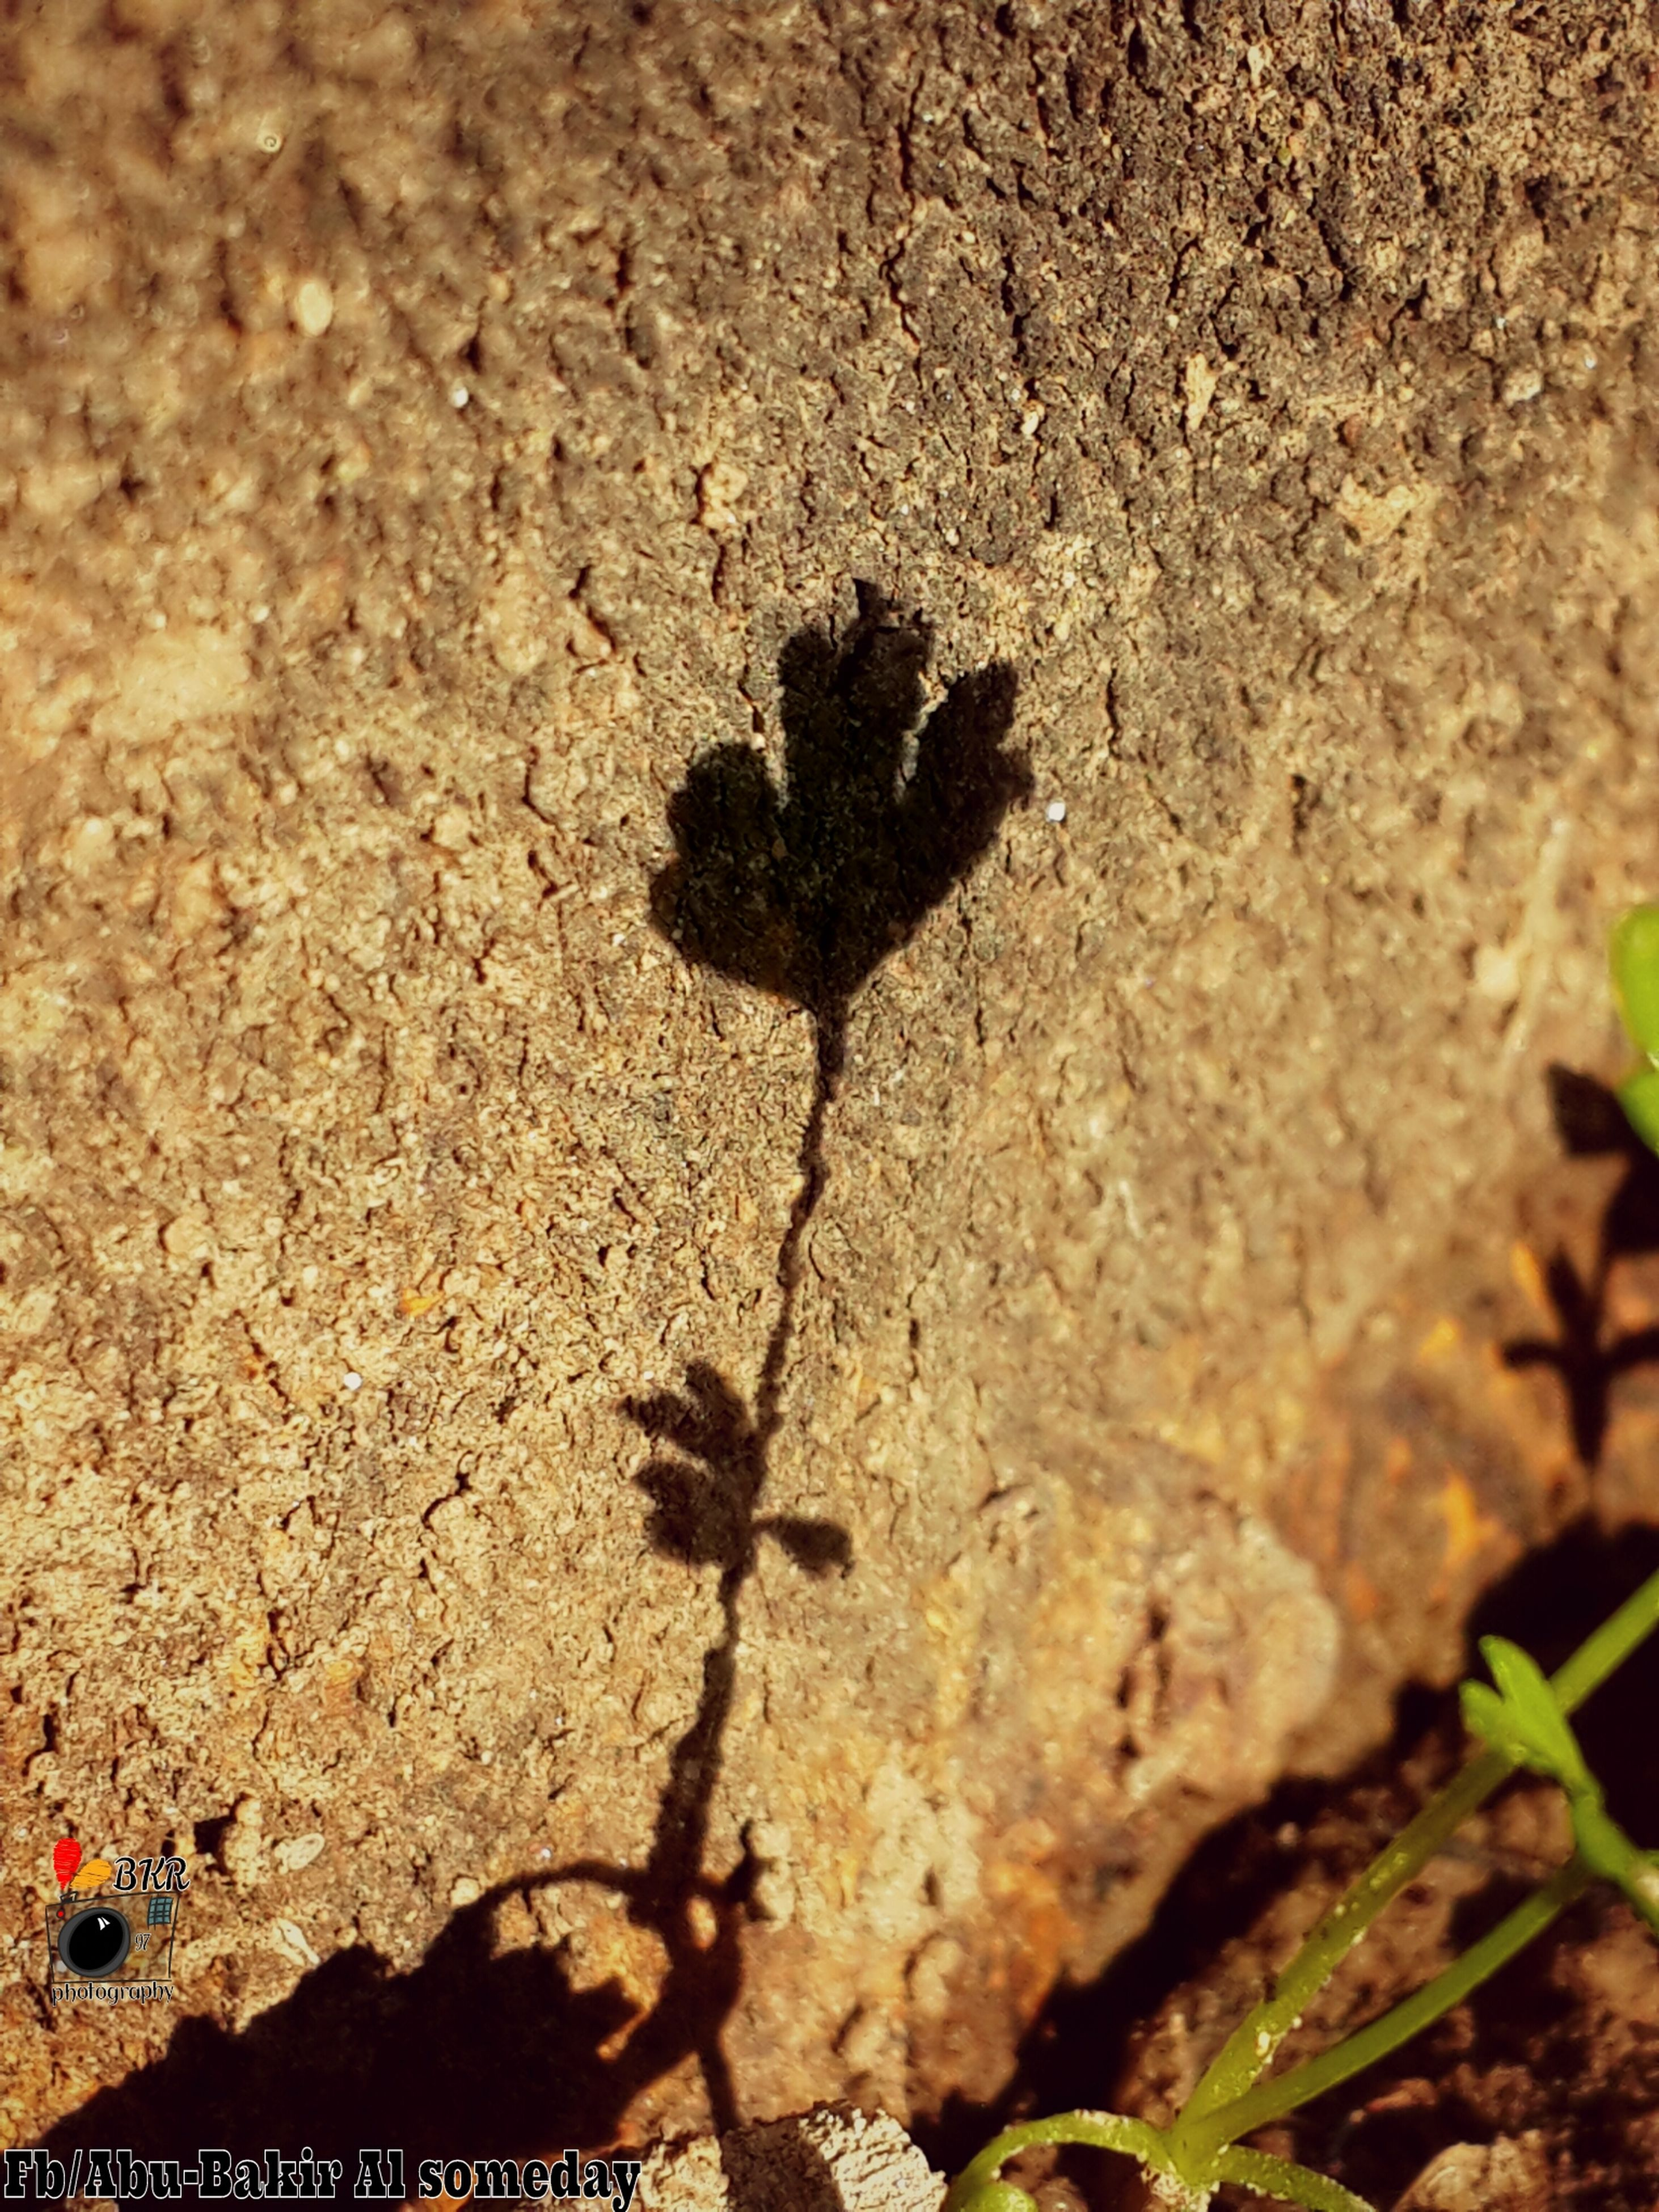 growth, nature, plant, leaf, rock - object, high angle view, textured, tranquility, growing, day, outdoors, close-up, sunlight, sand, cactus, no people, dead plant, beauty in nature, tree trunk, rock